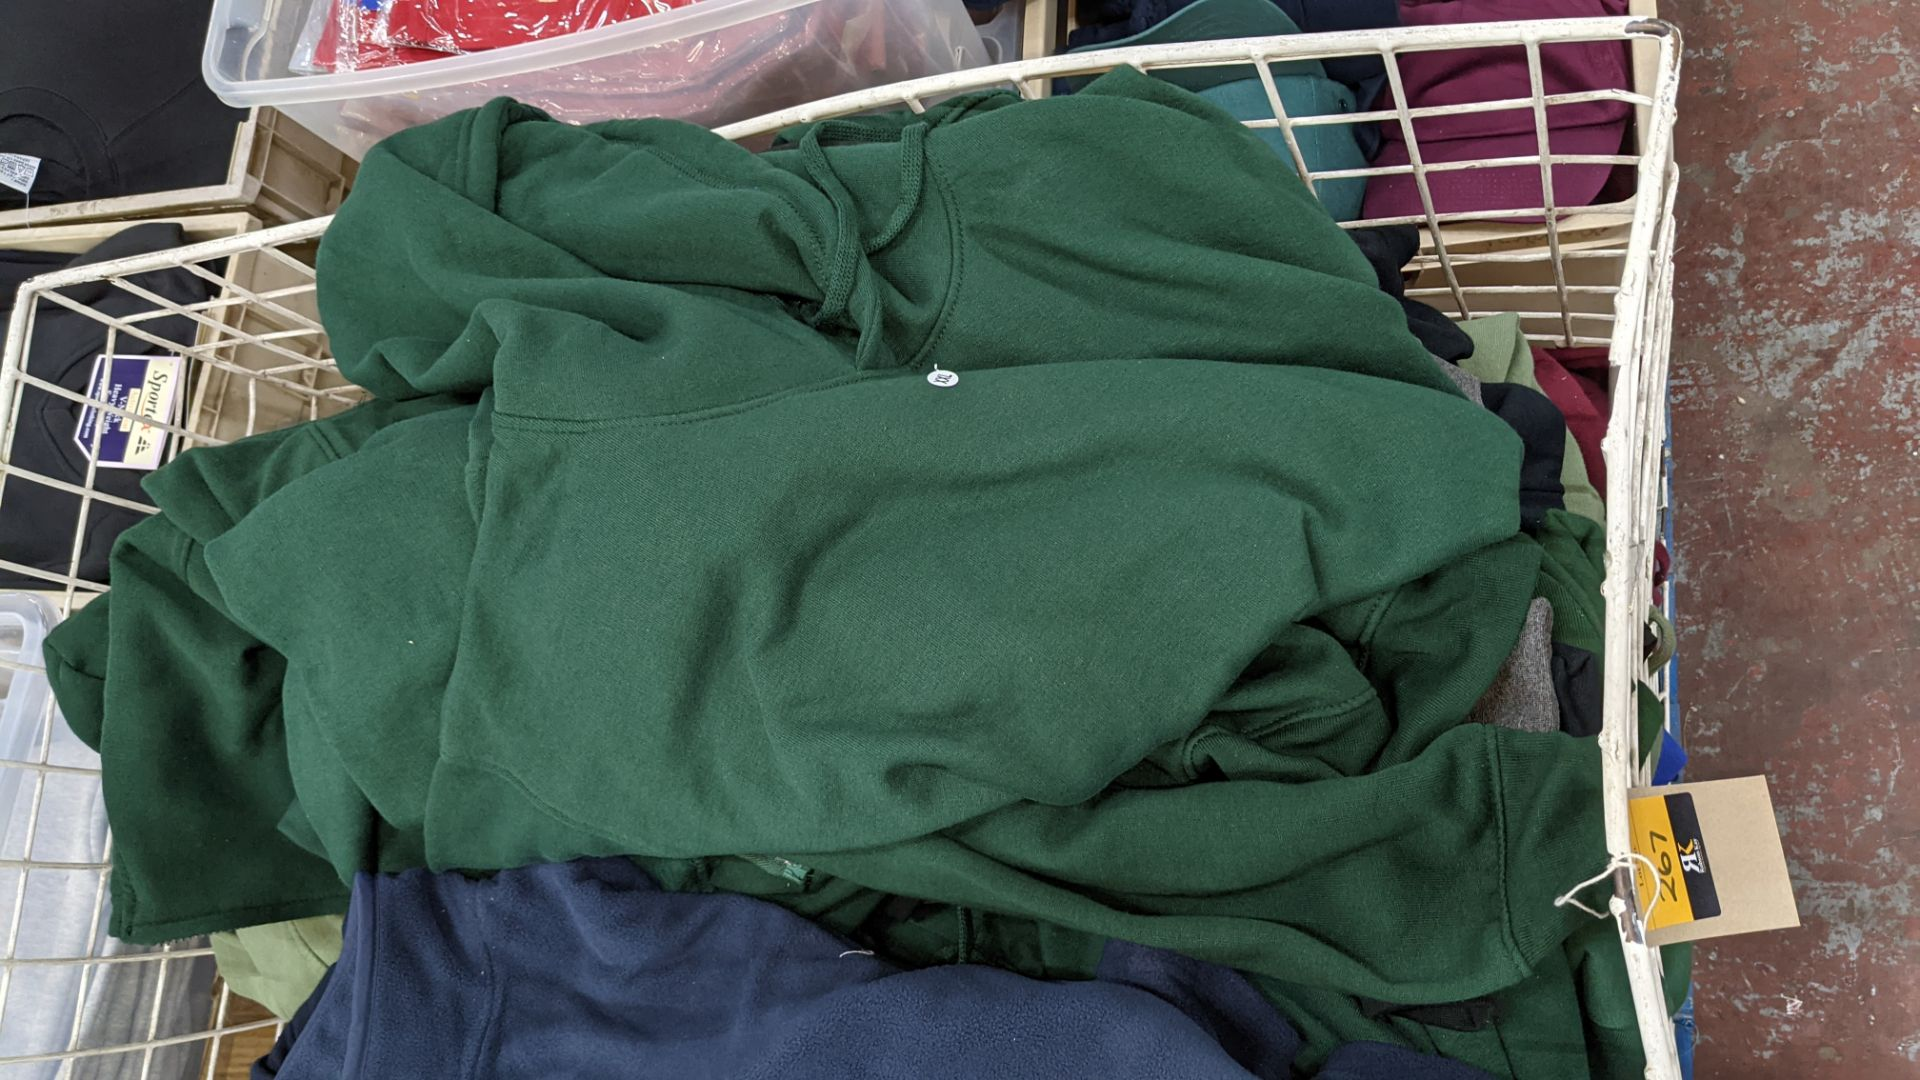 Large quantity of fleece tops - the contents of large cage. NB cage excluded - Image 5 of 8